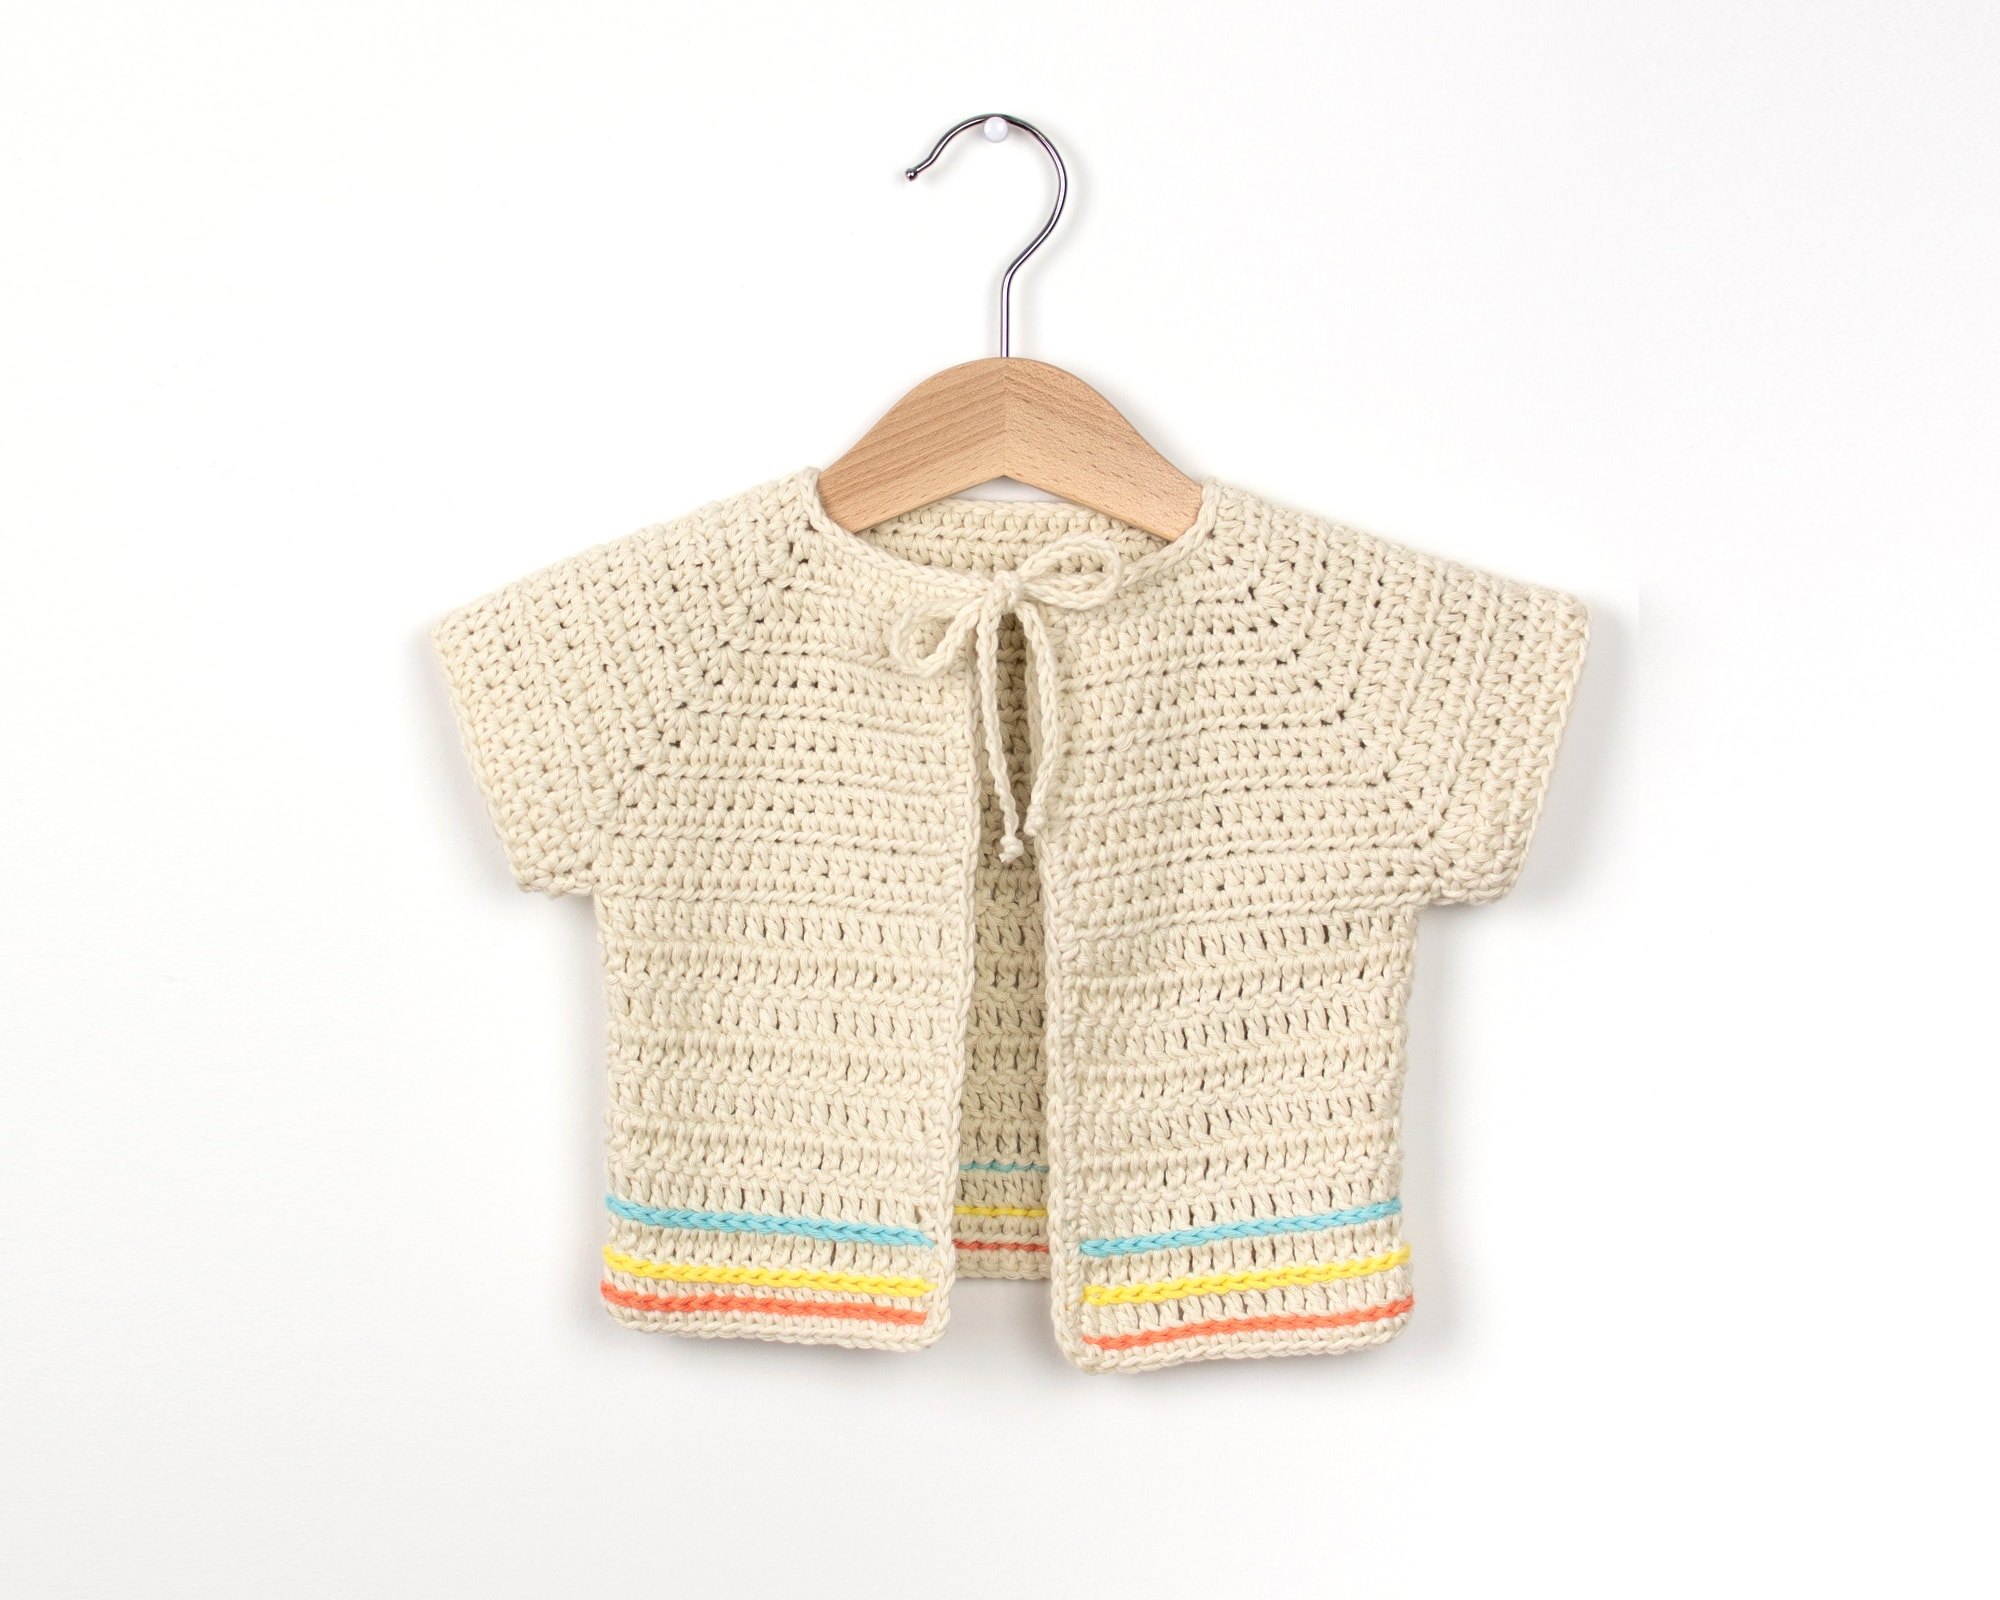 2e7c28949 This week I am going to share with you a very simple and beginner friendly  pattern and video tutorial on how to make a boho-inspired crochet baby  cardigan.